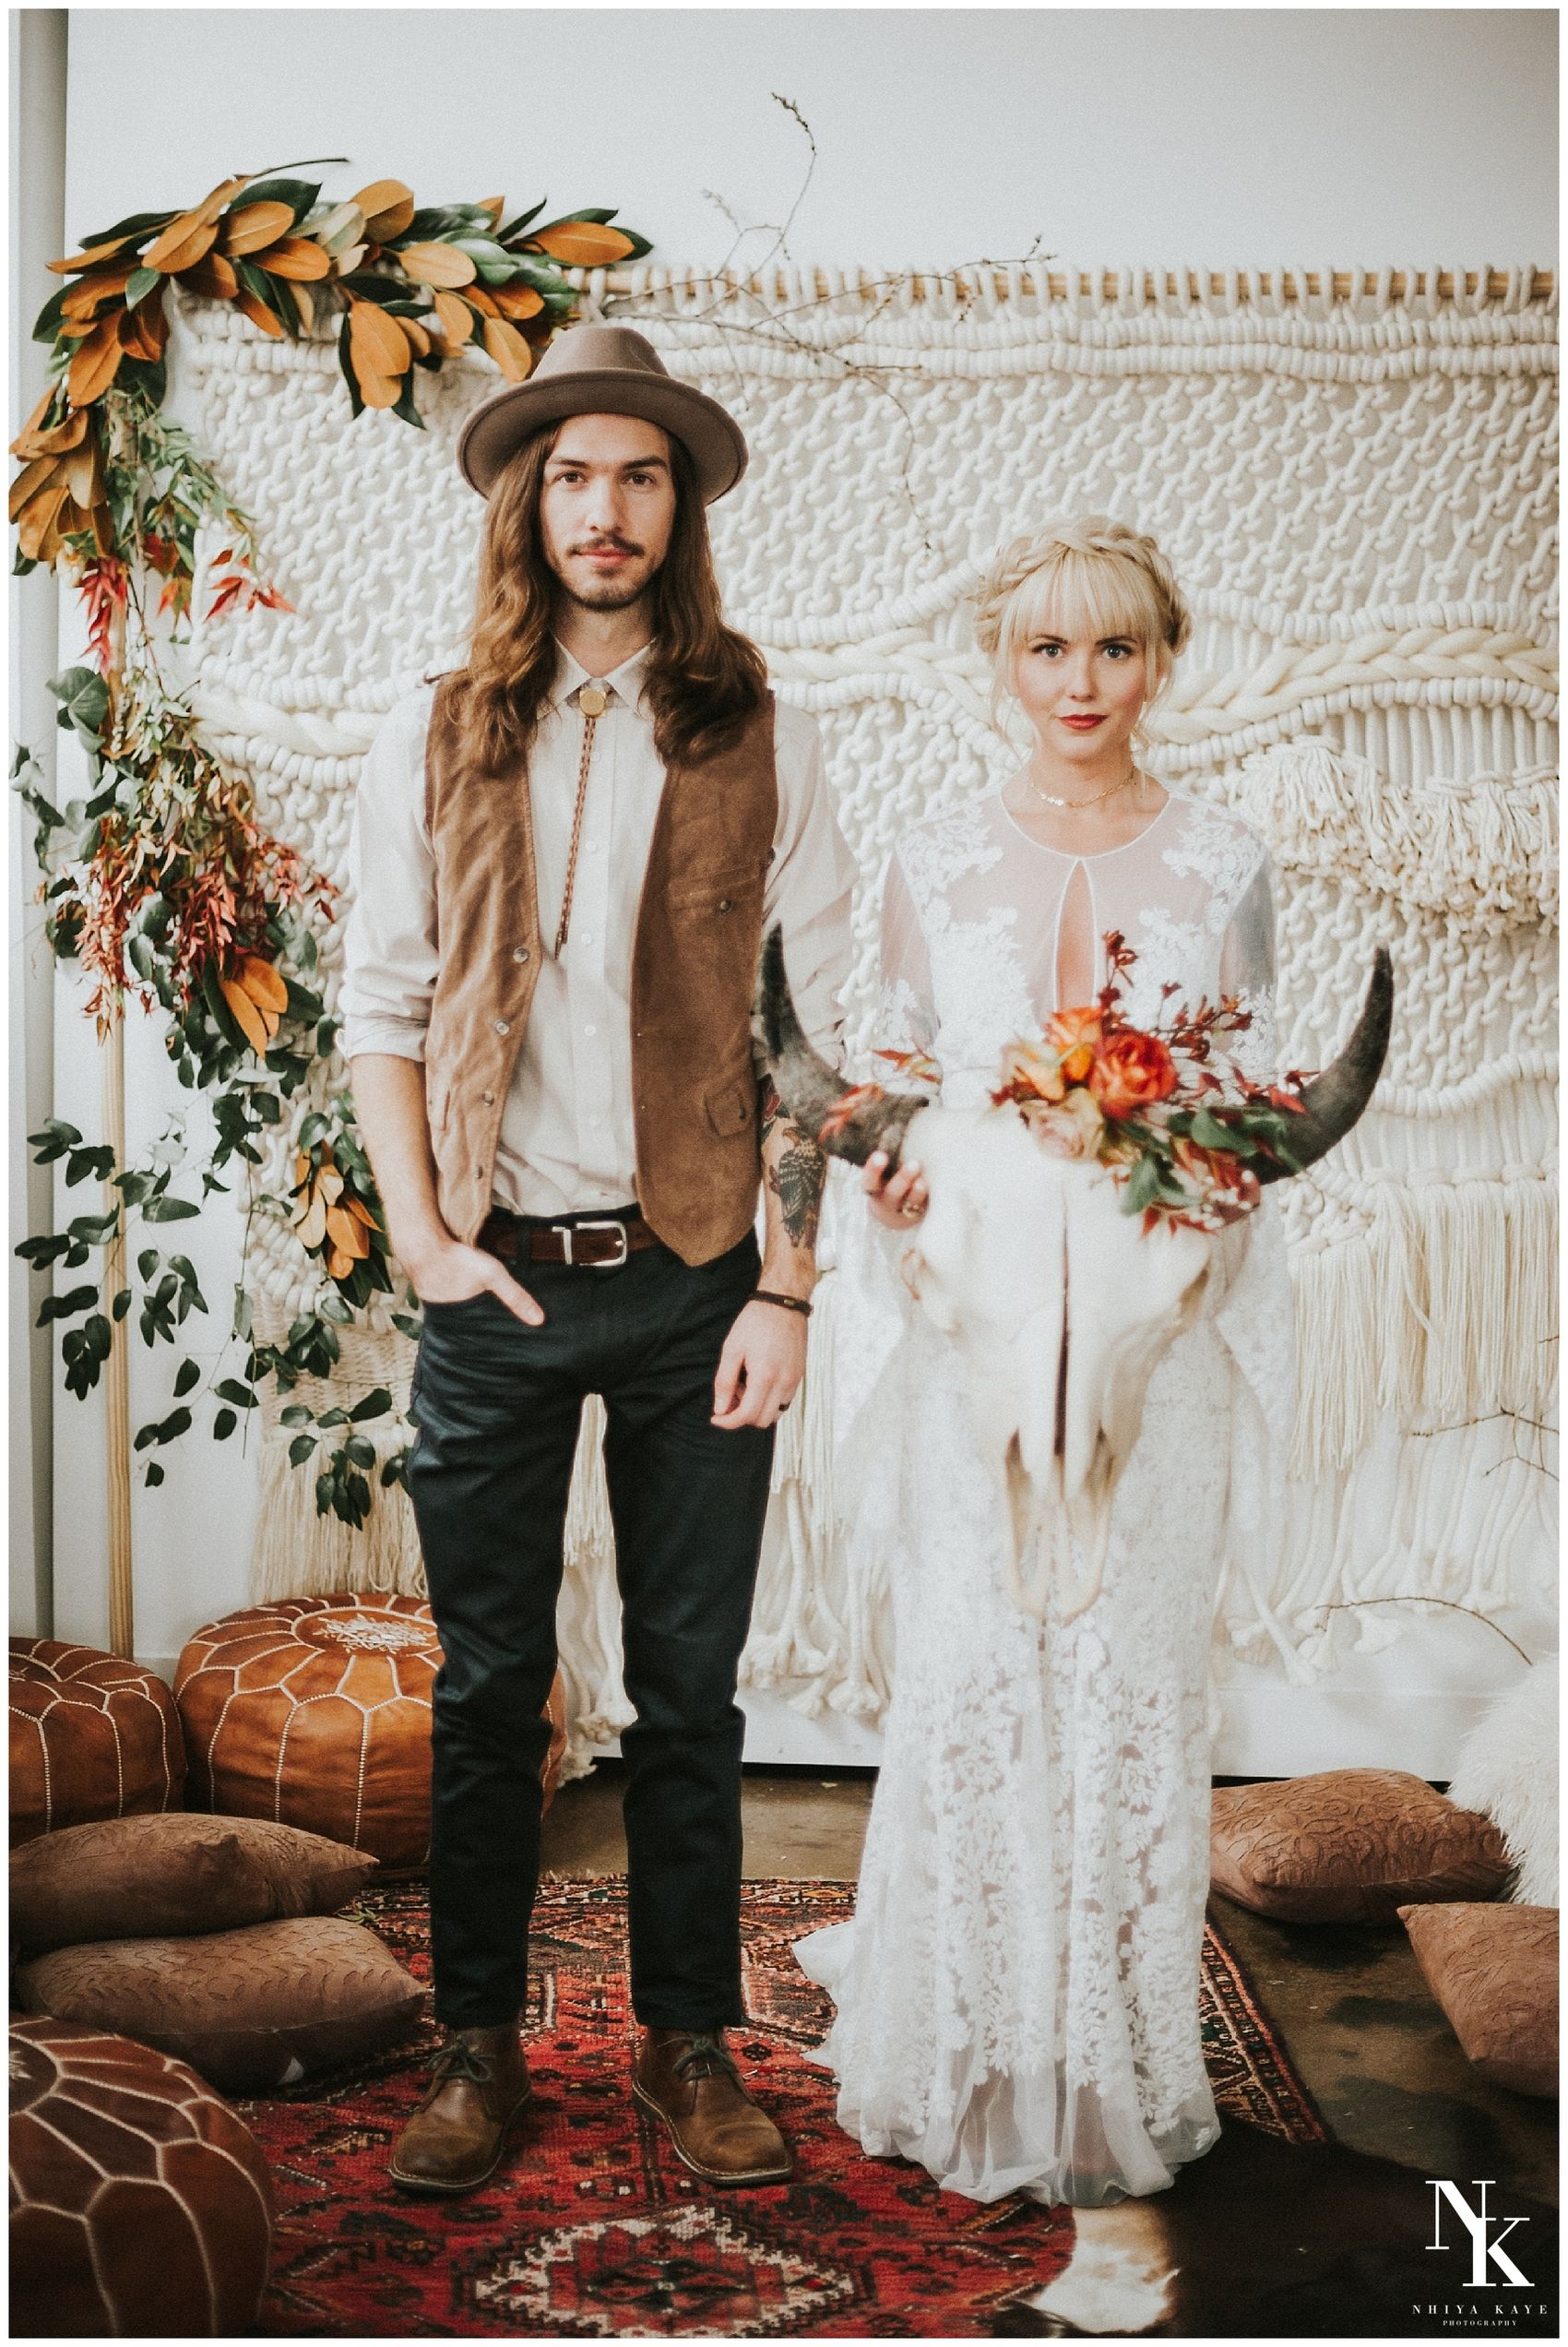 Winter boho bride urban bohemian edgy wedding dress rue de seine